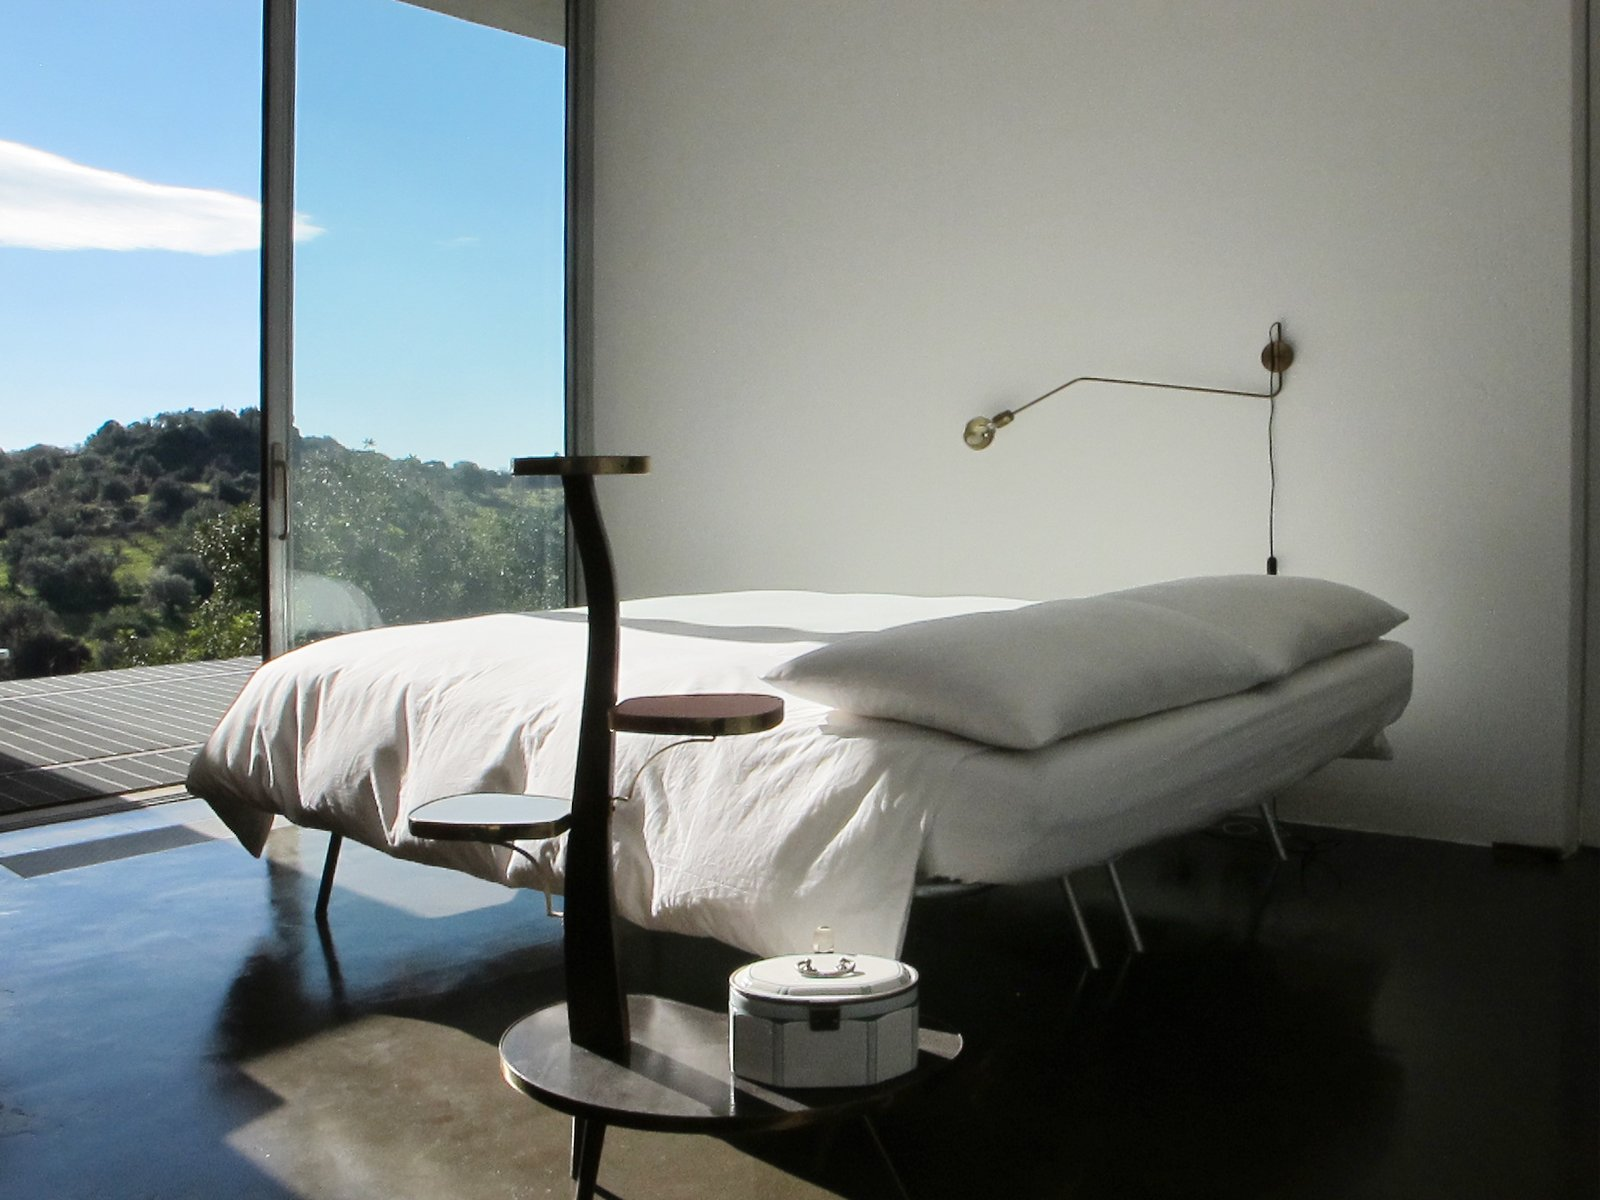 Bedroom, Bed, Wall Lighting, Night Stands, and Concrete Floor  Sea View Villa from Stay in a Minimalist Villa in the Sicilian Countryside, Complete With Sea Views